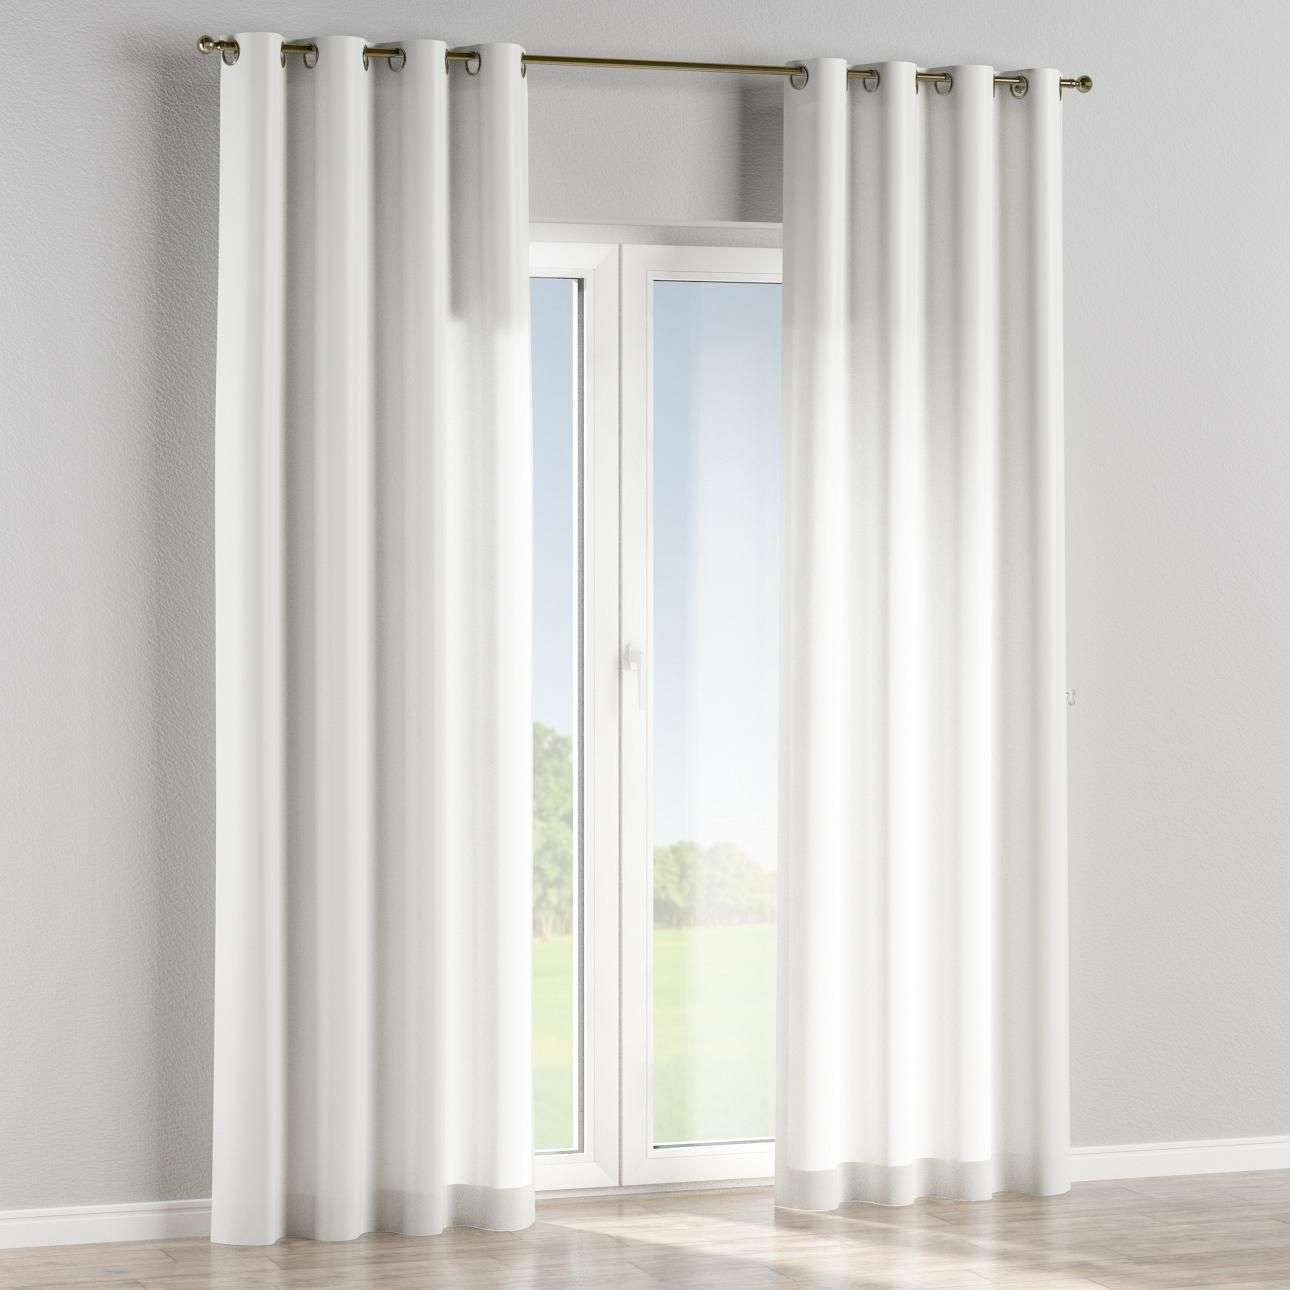 Eyelet lined curtains in collection Fleur , fabric: 139-52